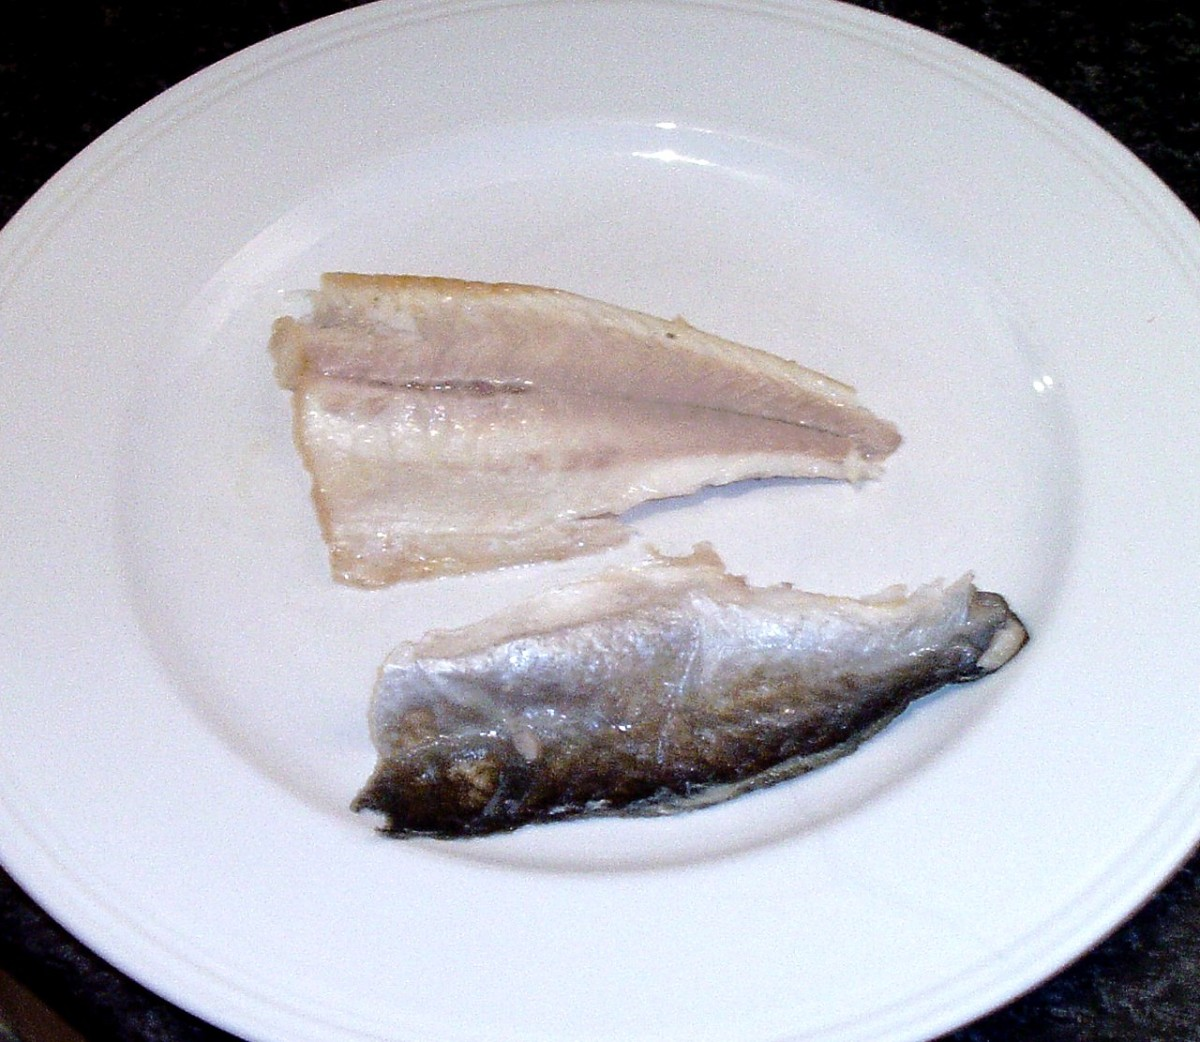 Crisped skin peels easily from cooked fish sillet